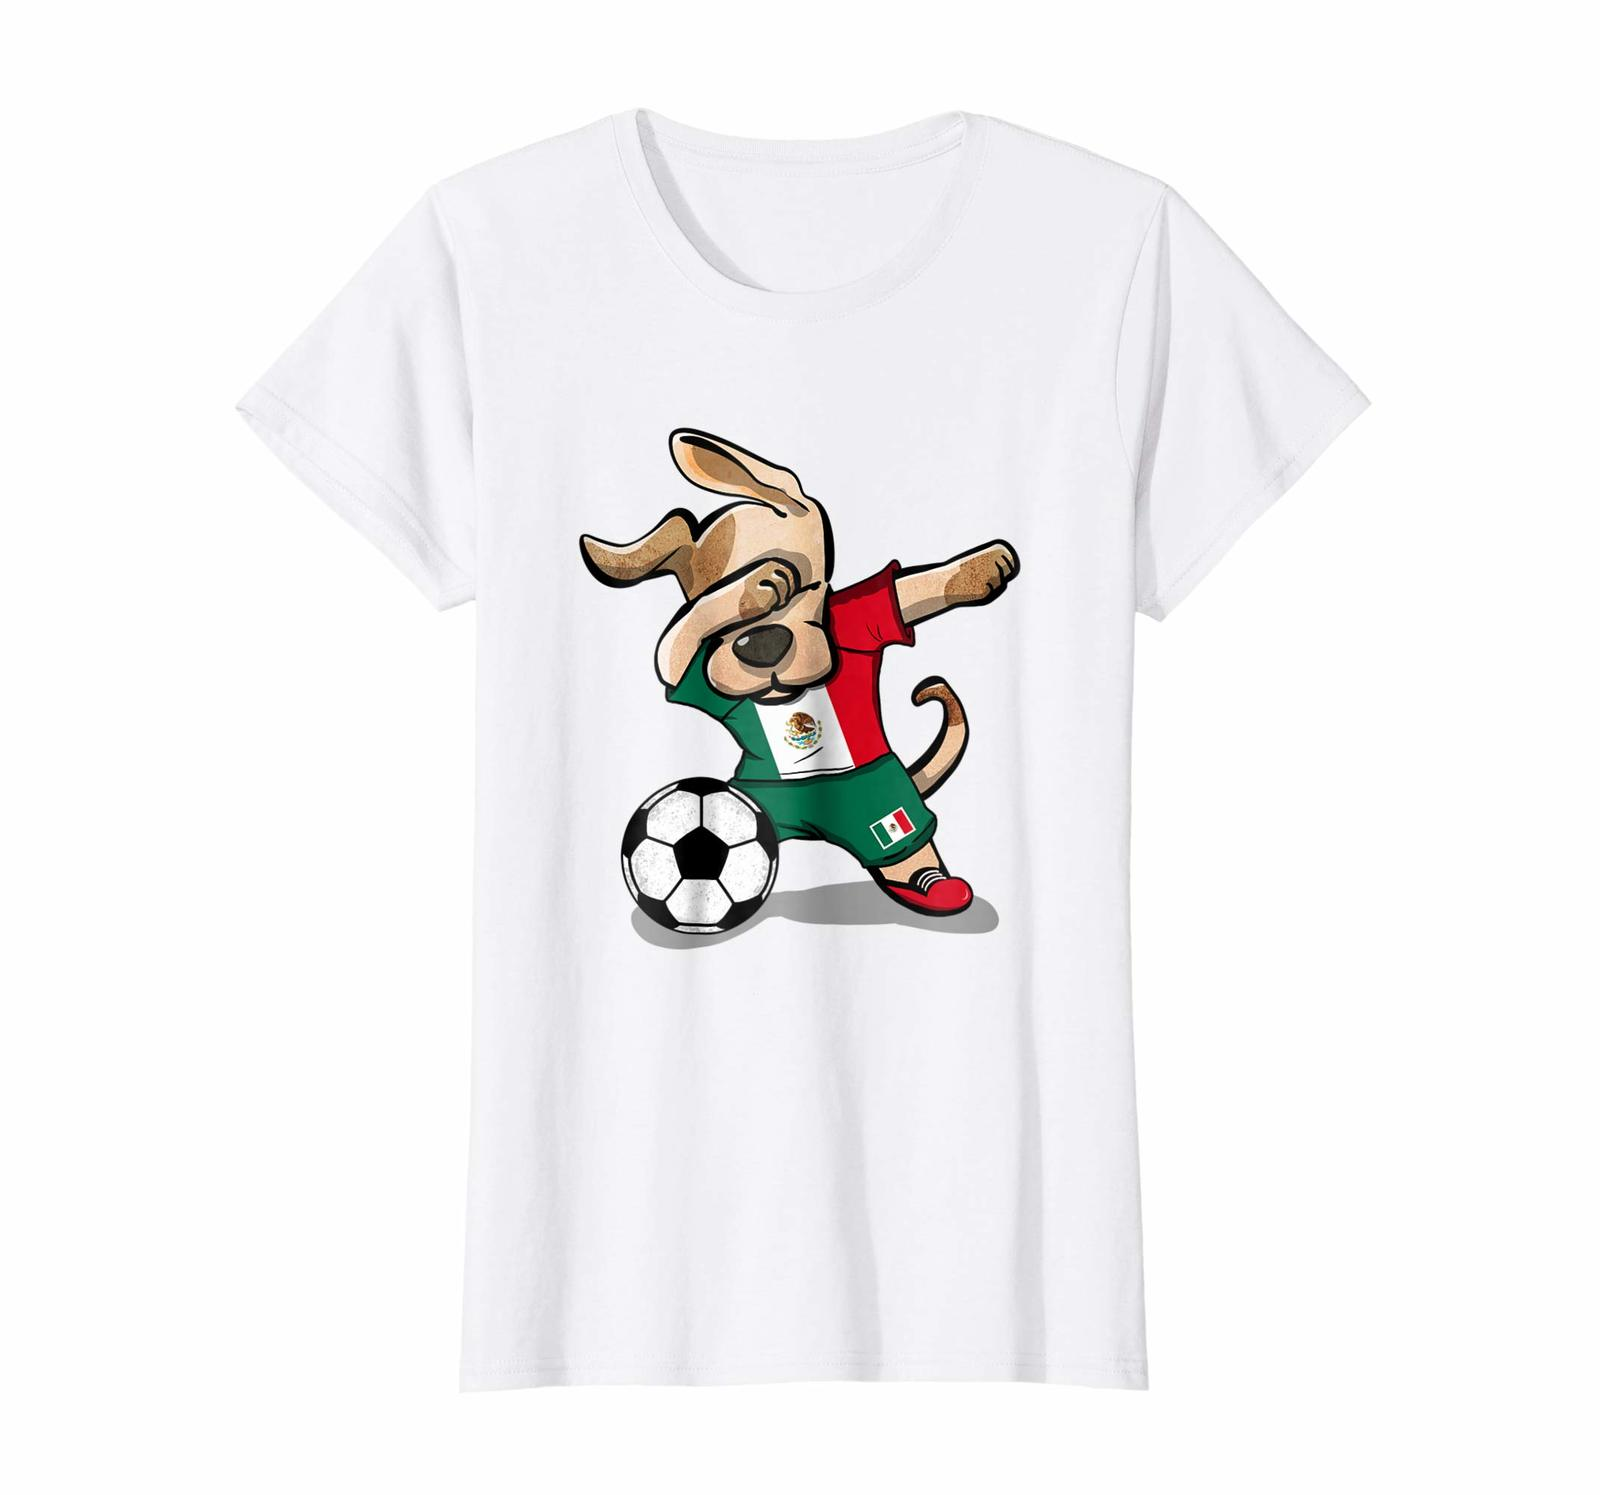 7b2a4706f3b New Shirts - Dog Dabbing Soccer Boy Mexico and 50 similar items.  A1zdawwgrcl. cla 7c2140 2000 7c815brlyhs l.png 7c0 0 2140 2000 0.0 0.0  2140.0